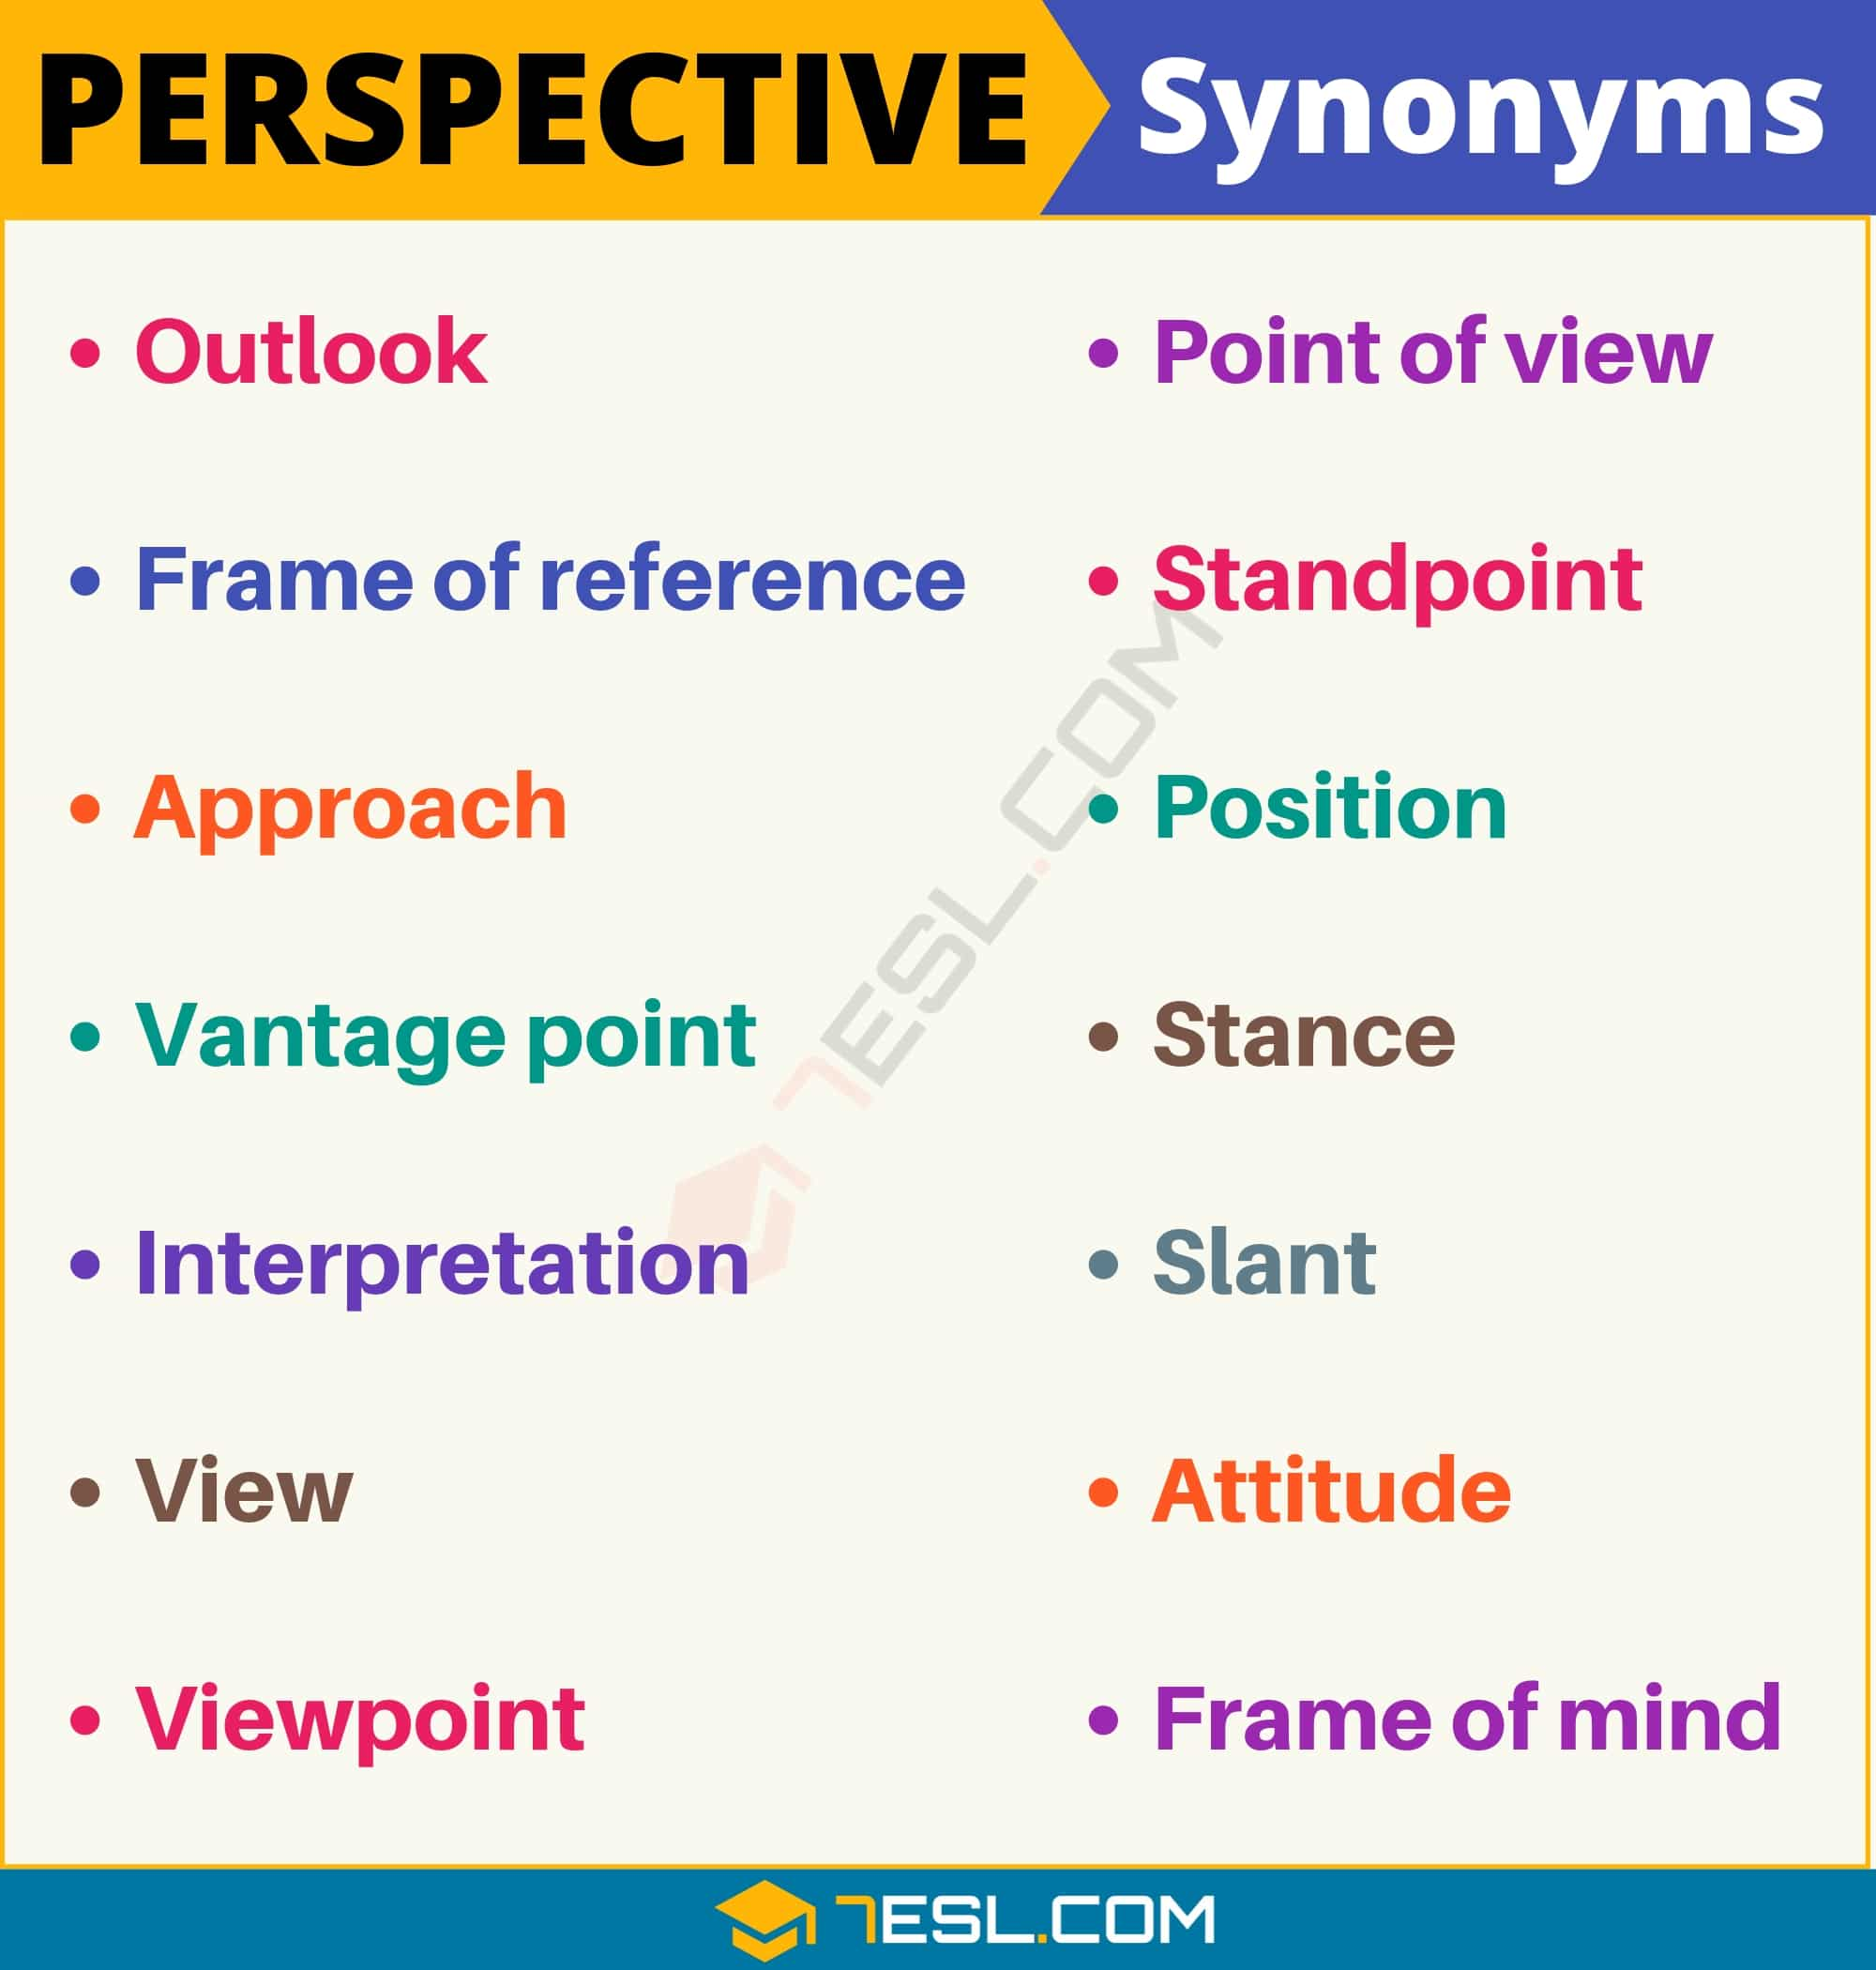 PERSPECTIVE Synonym: 15 Synonyms for Perspective with Useful Examples